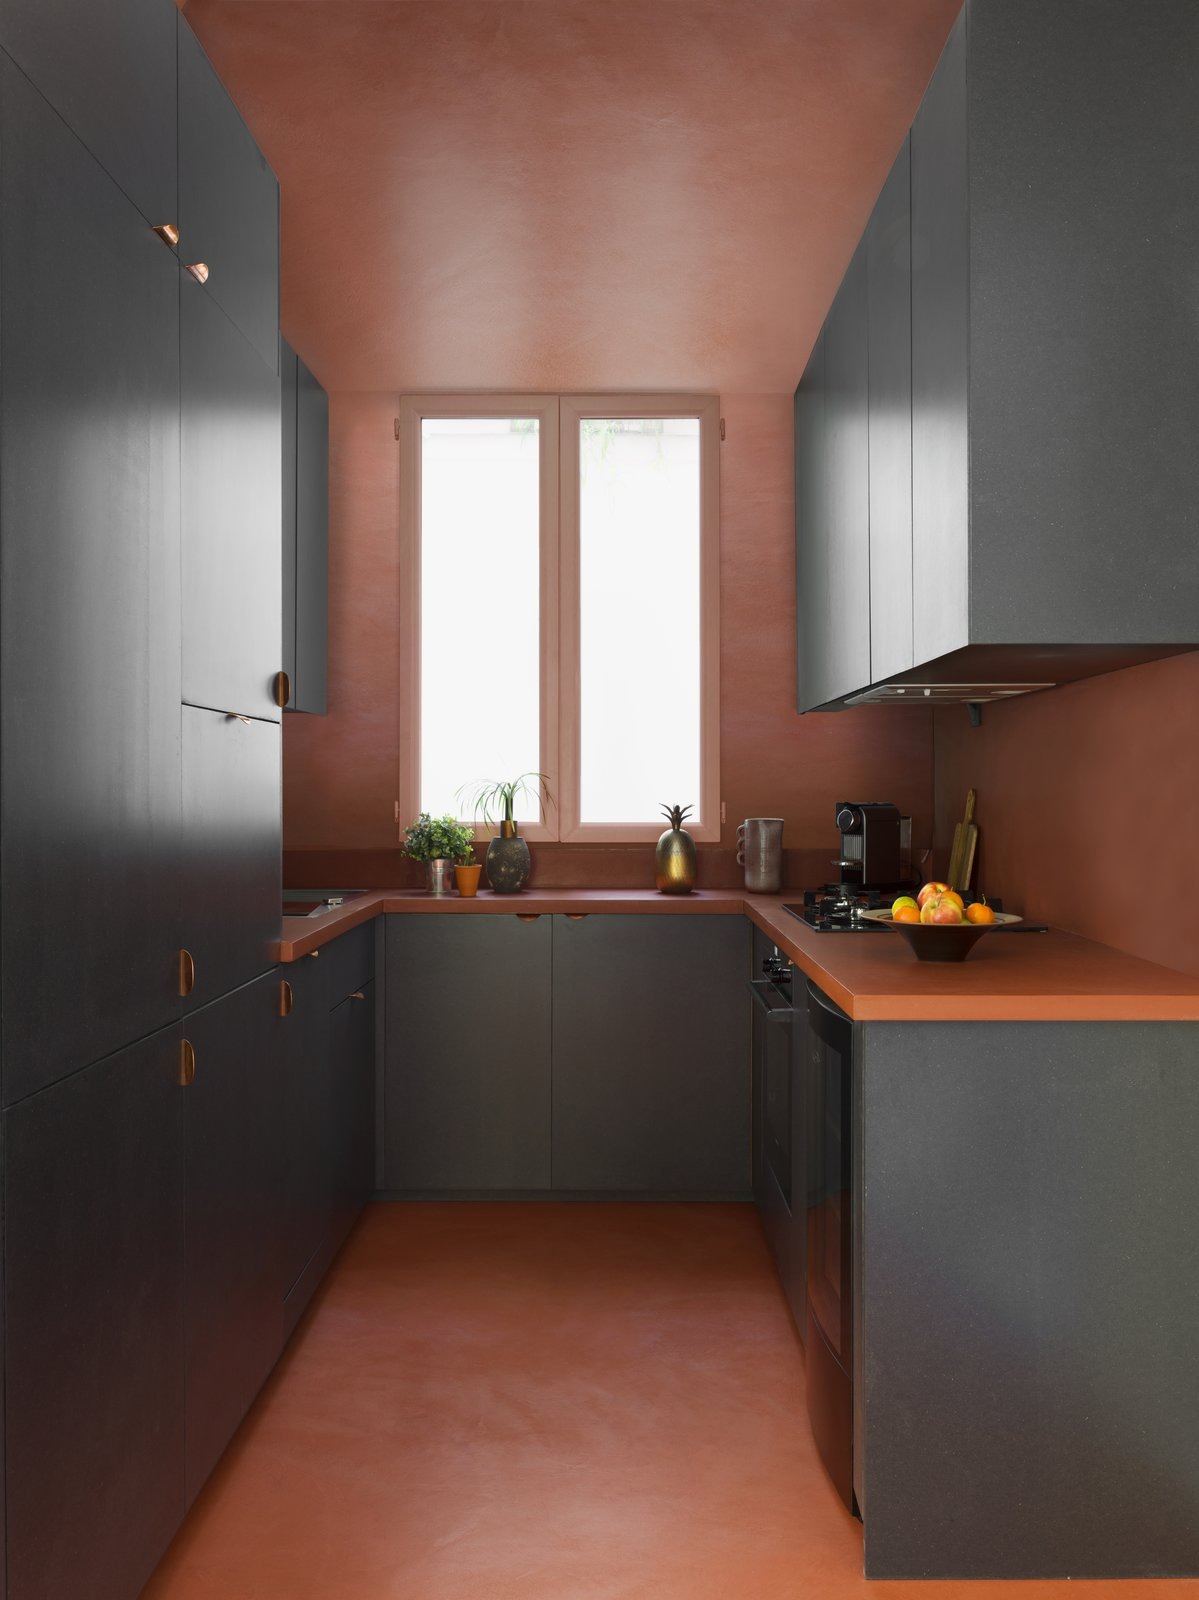 Kitchen, Wall Oven, Cooktops, Dishwasher, Concrete Floor, and Laminate Counter  Photo 6 of 12 in Street Art Meets Vintage Pieces in a Chic Parisian Renovation